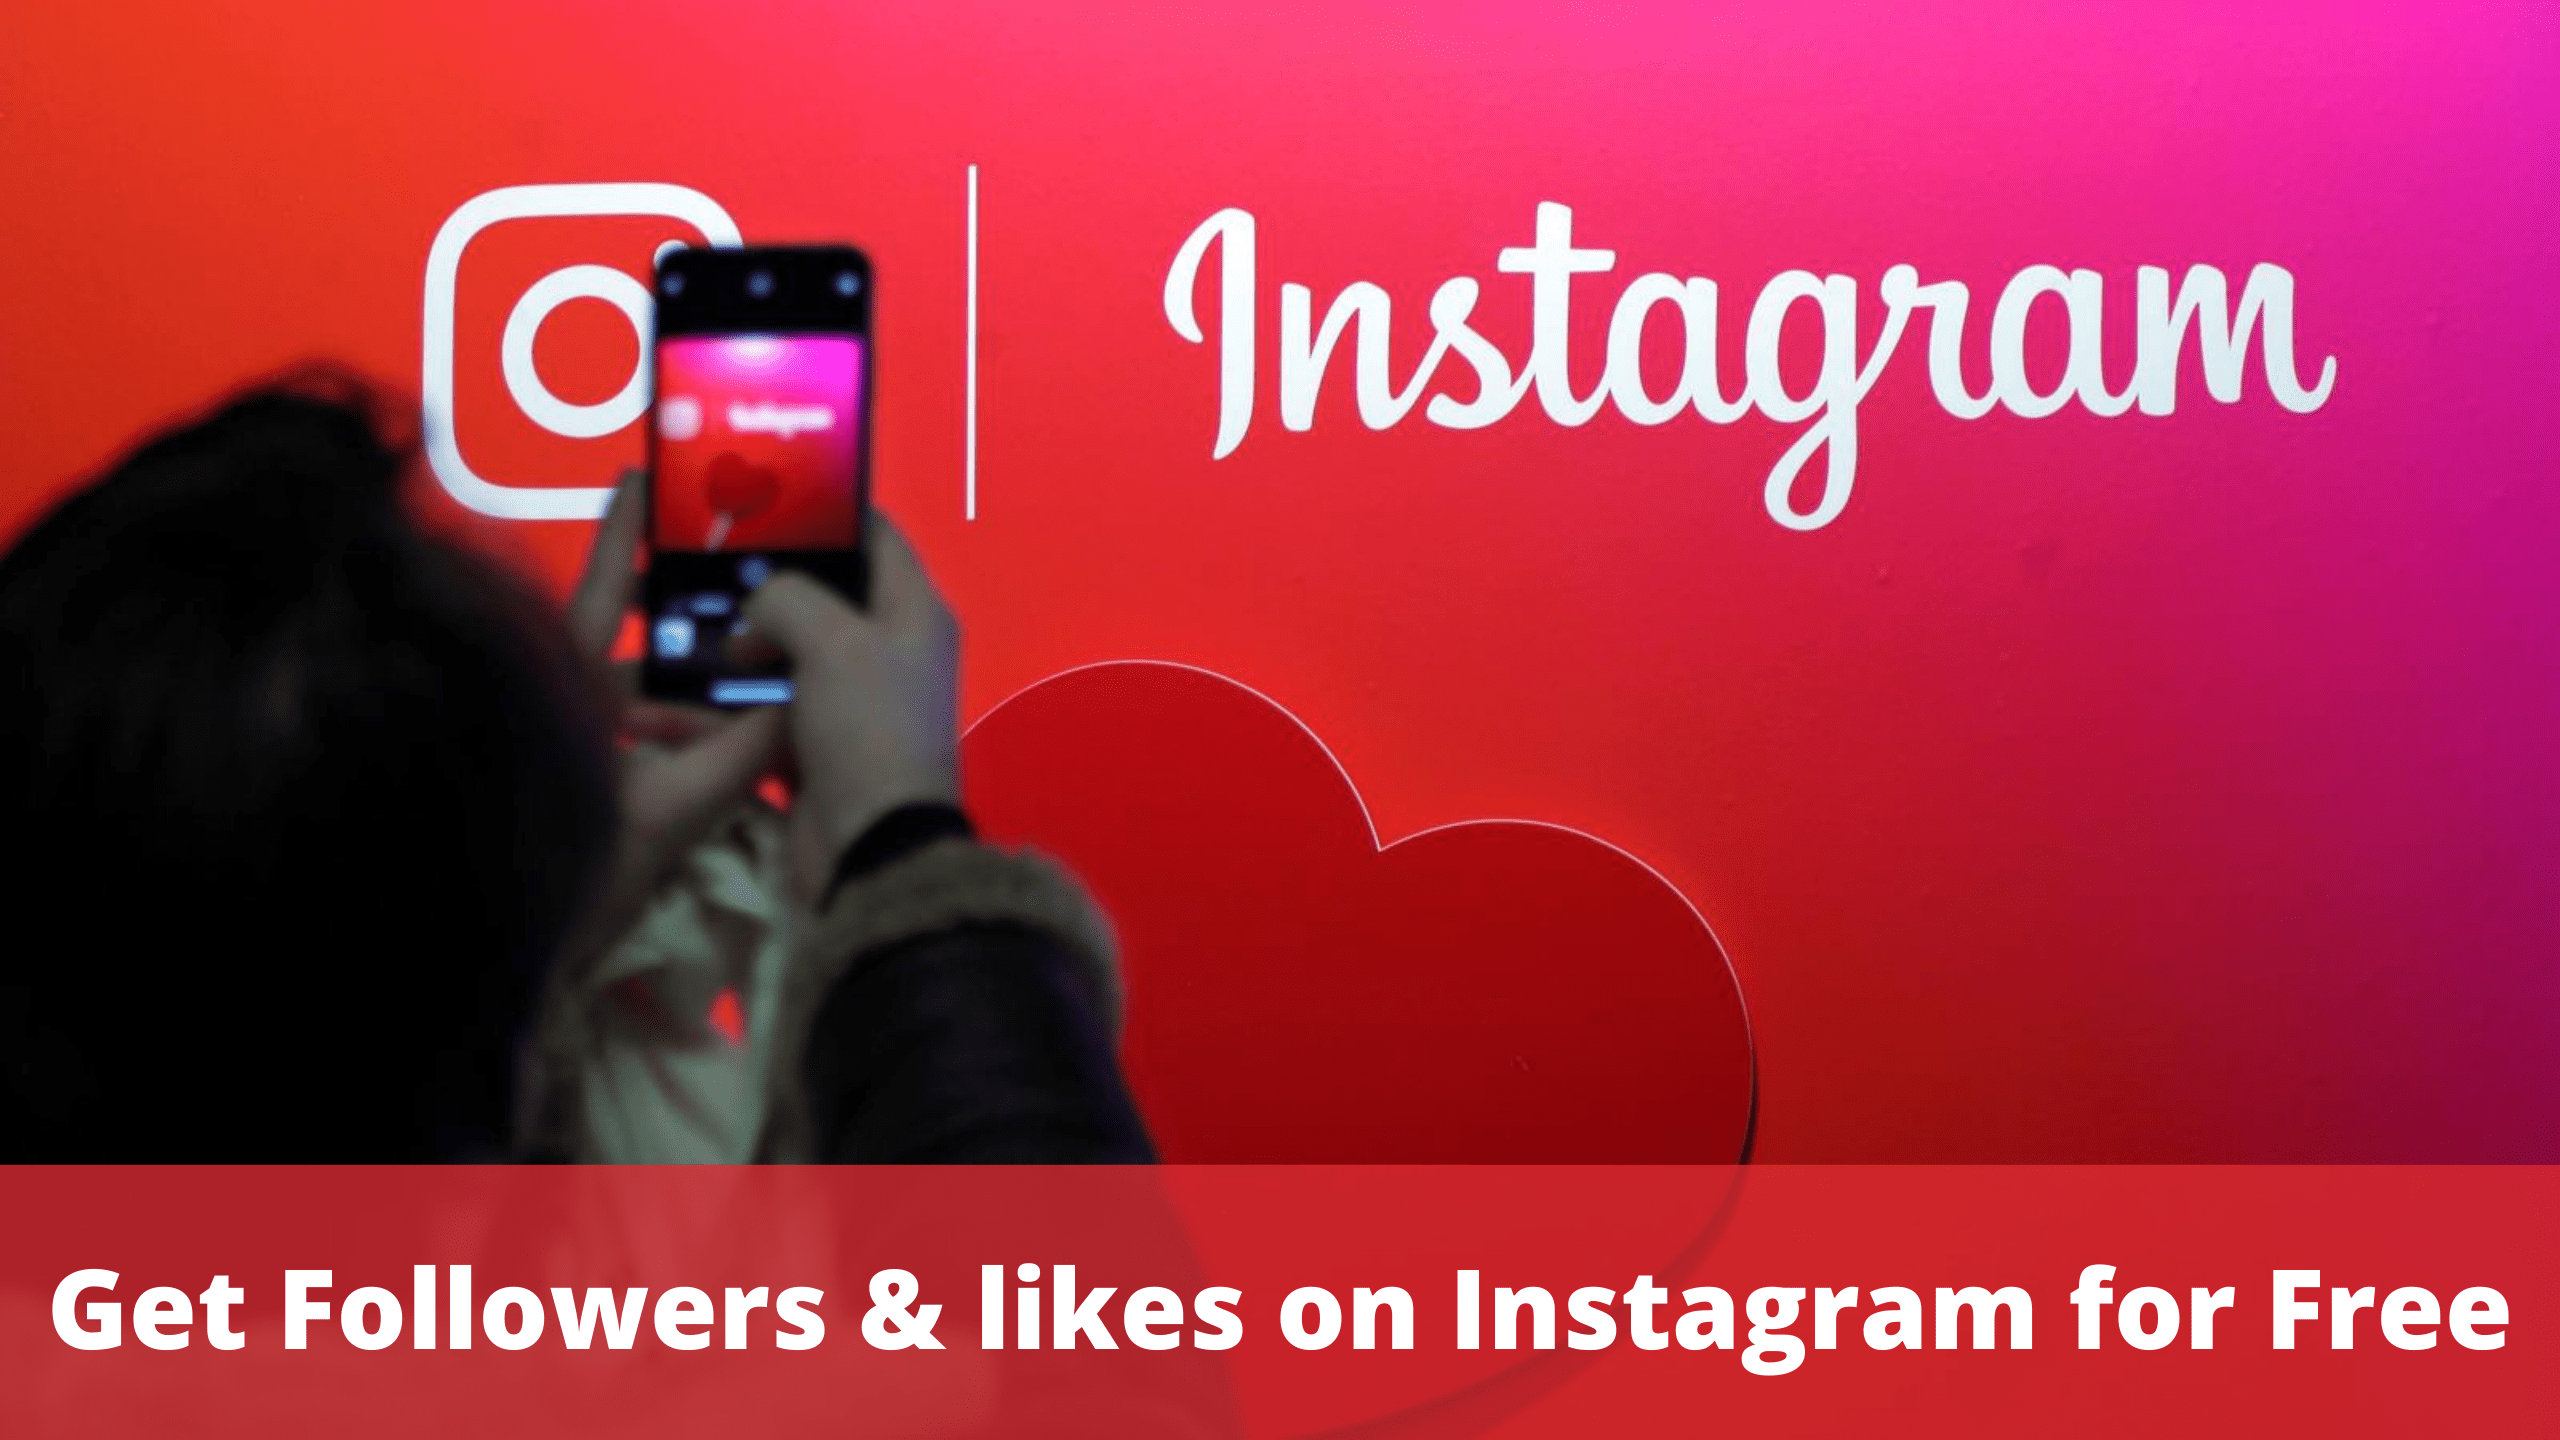 How to get followers and likes on Instagram for free: GetInsta